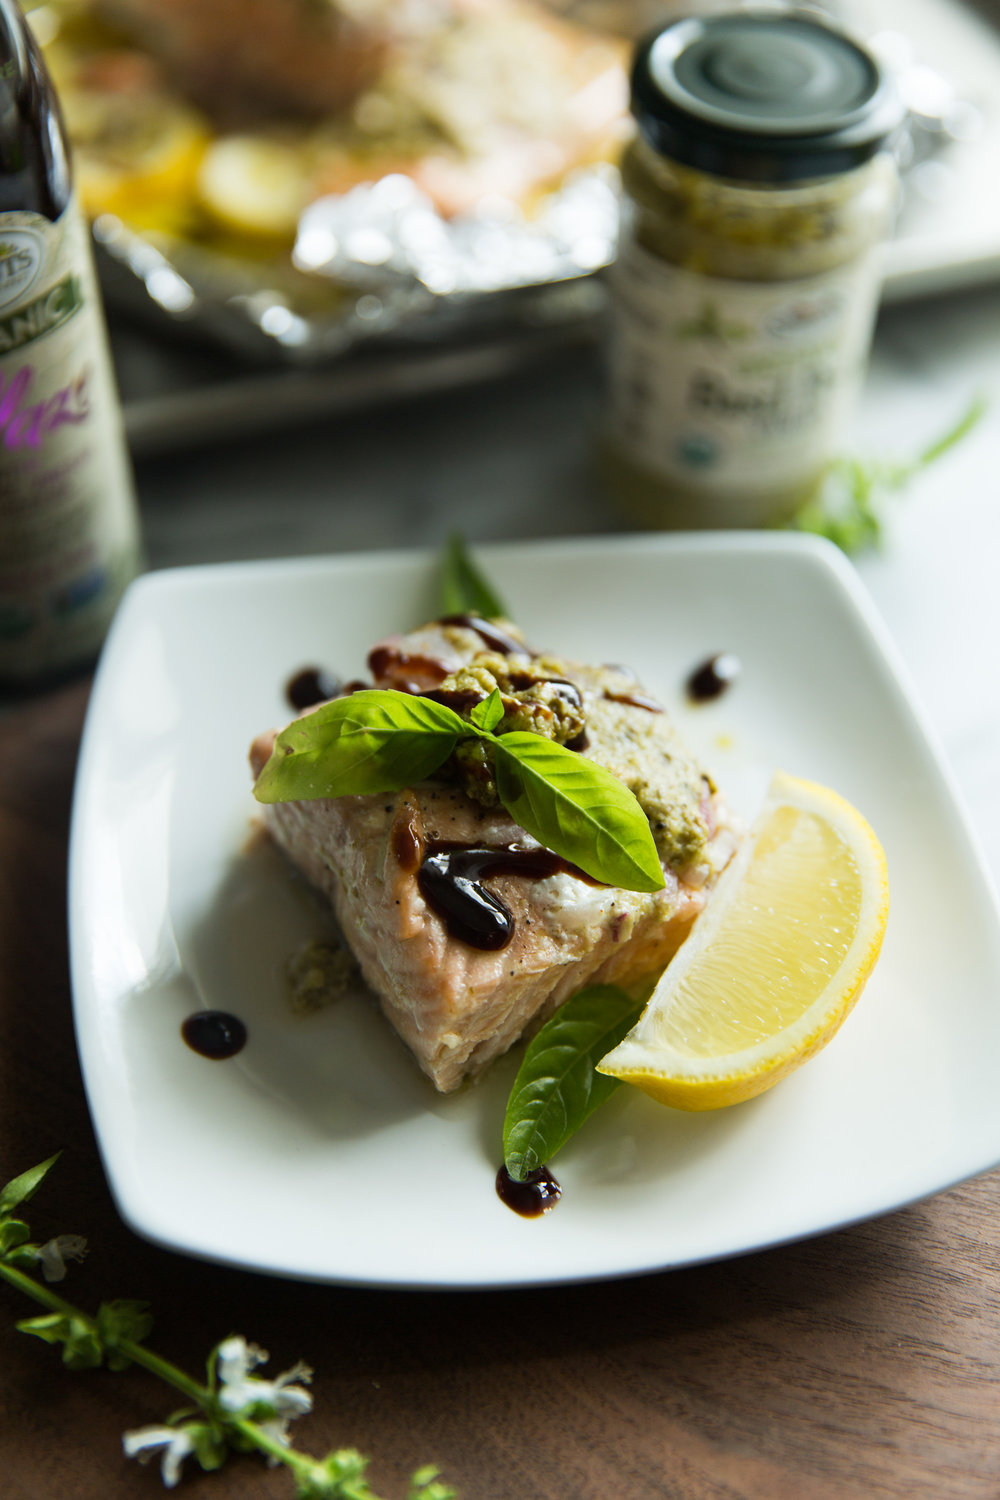 Braised Salmon with Lemon Wedge